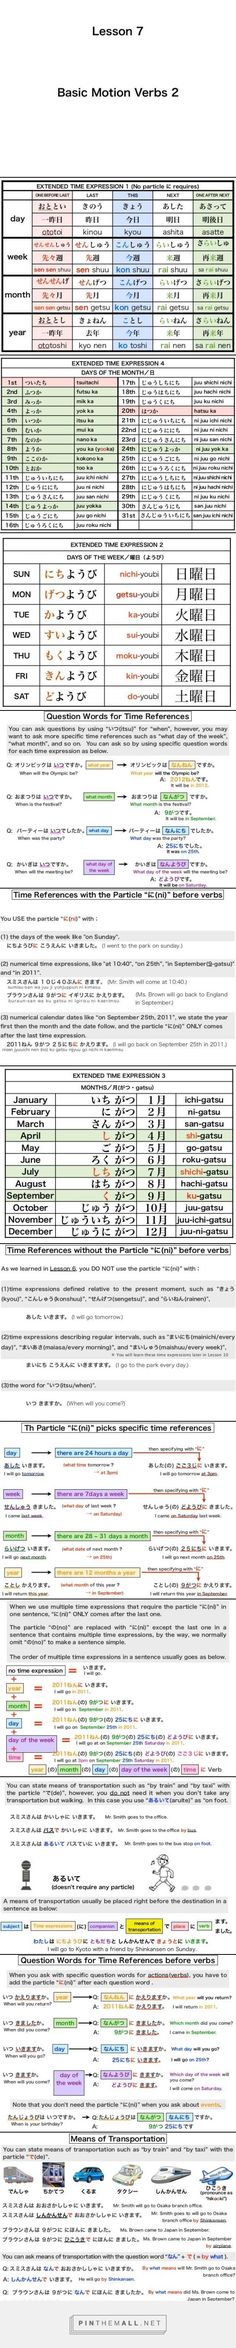 japanese motion verbs 2 - time expression